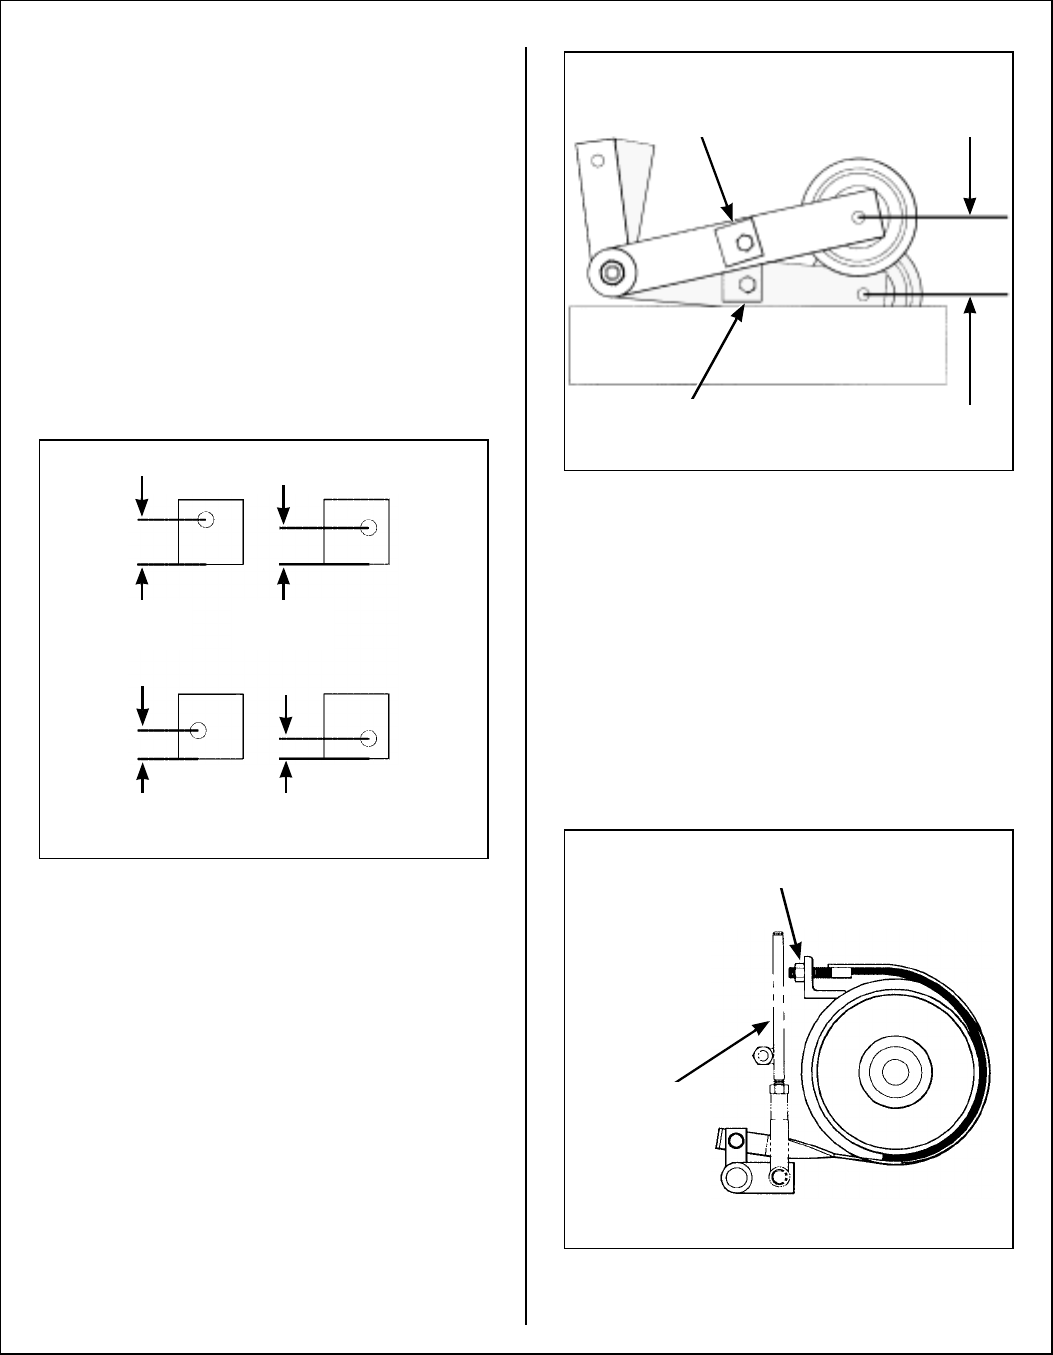 walker mower wiring diagram for charging unit wiring library maintenance instructions adjustments walker mc 18 hp users manual maintenance instructions adjustments walker mower wiring diagram for charging unit